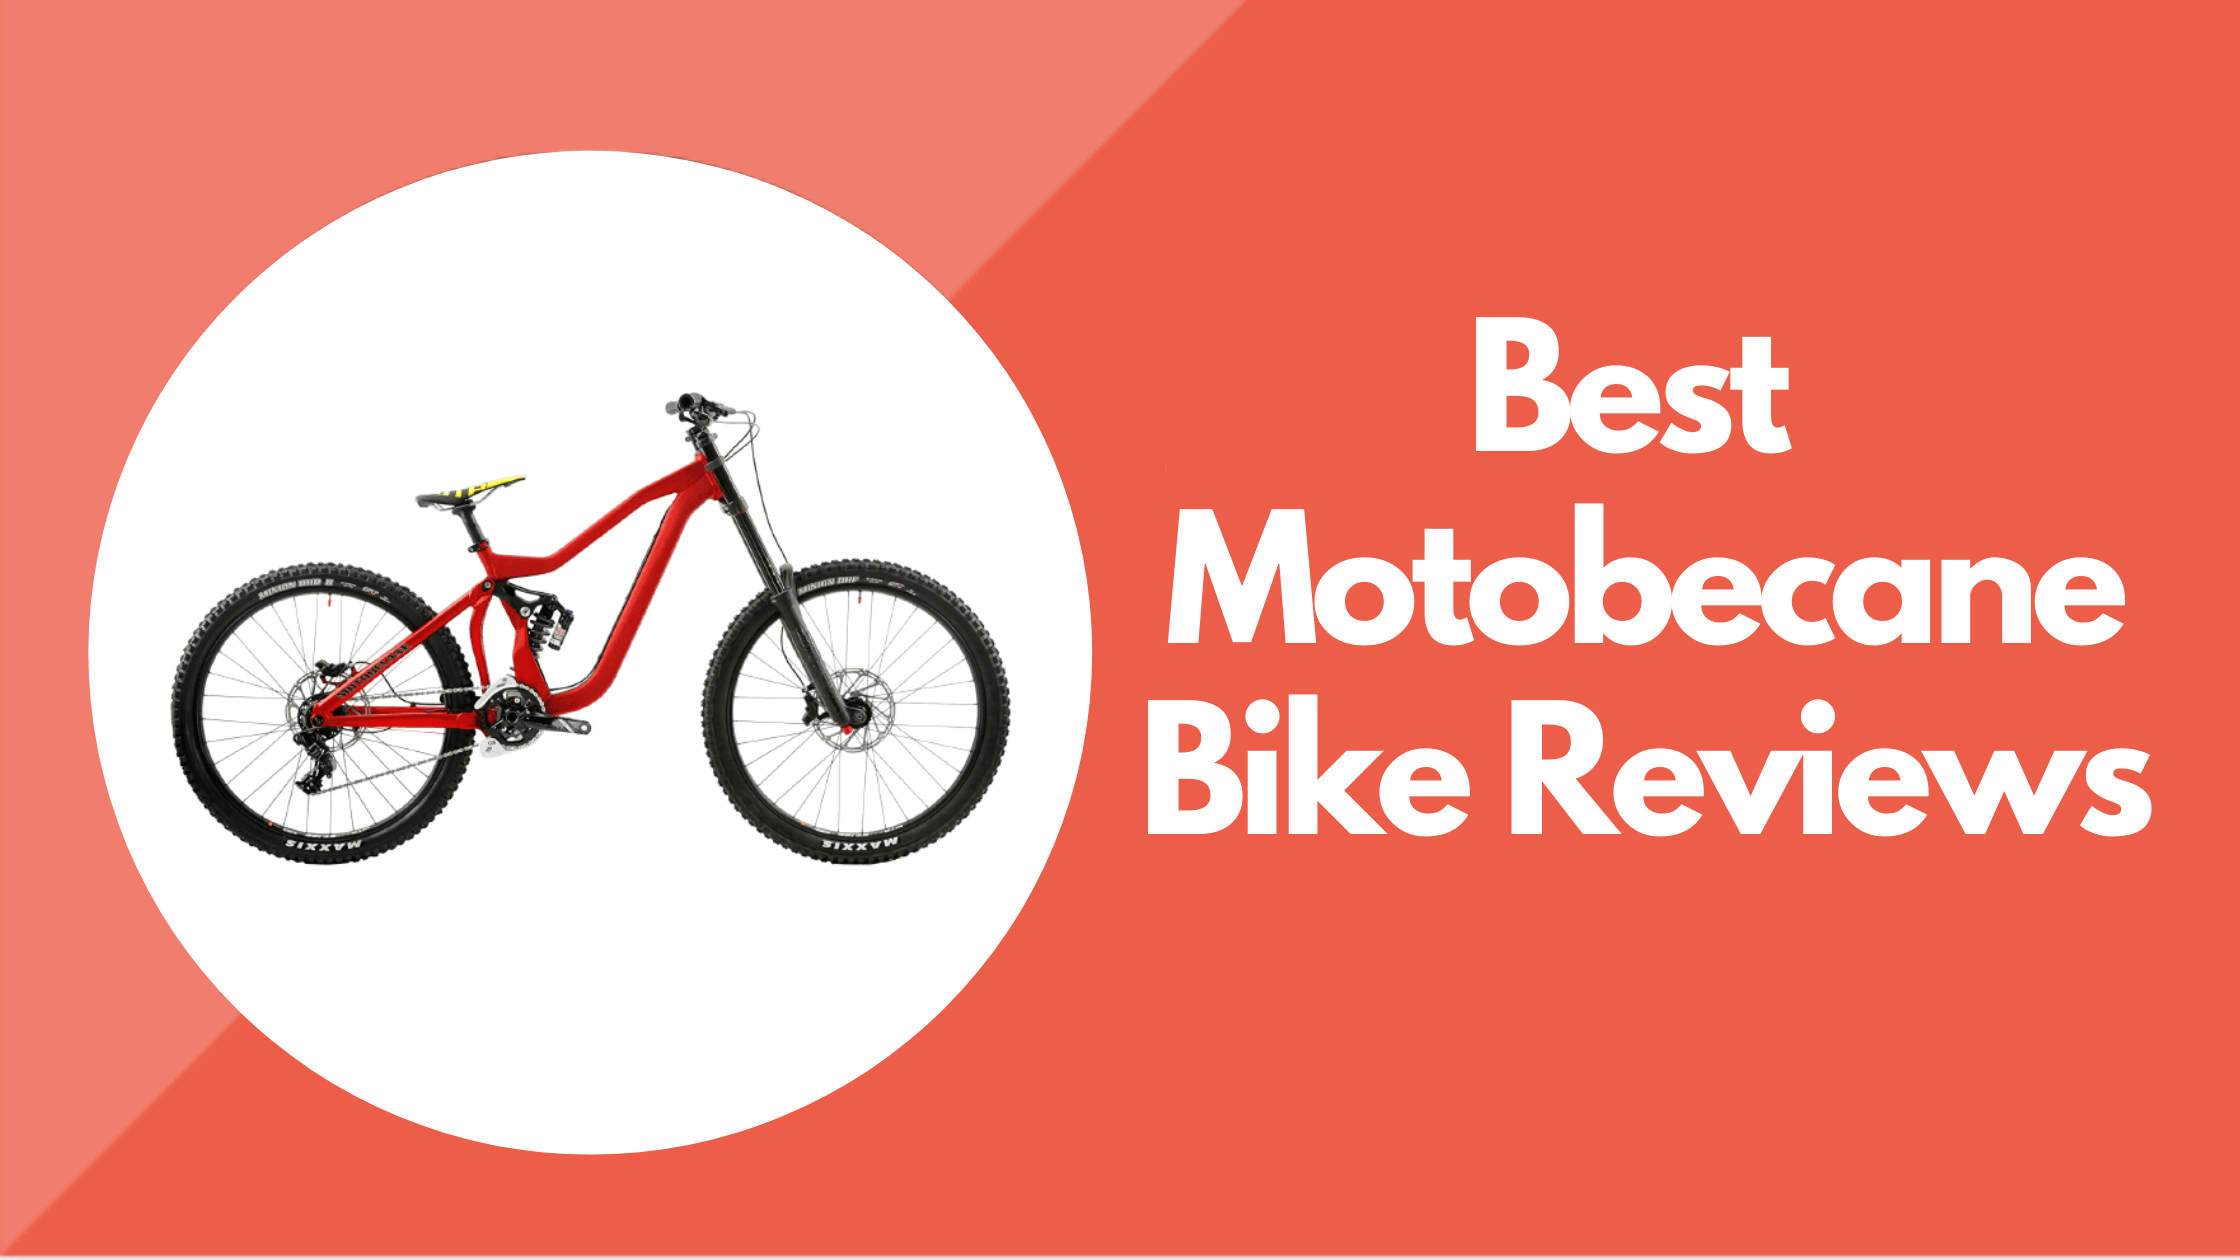 Motobecane bike reviews